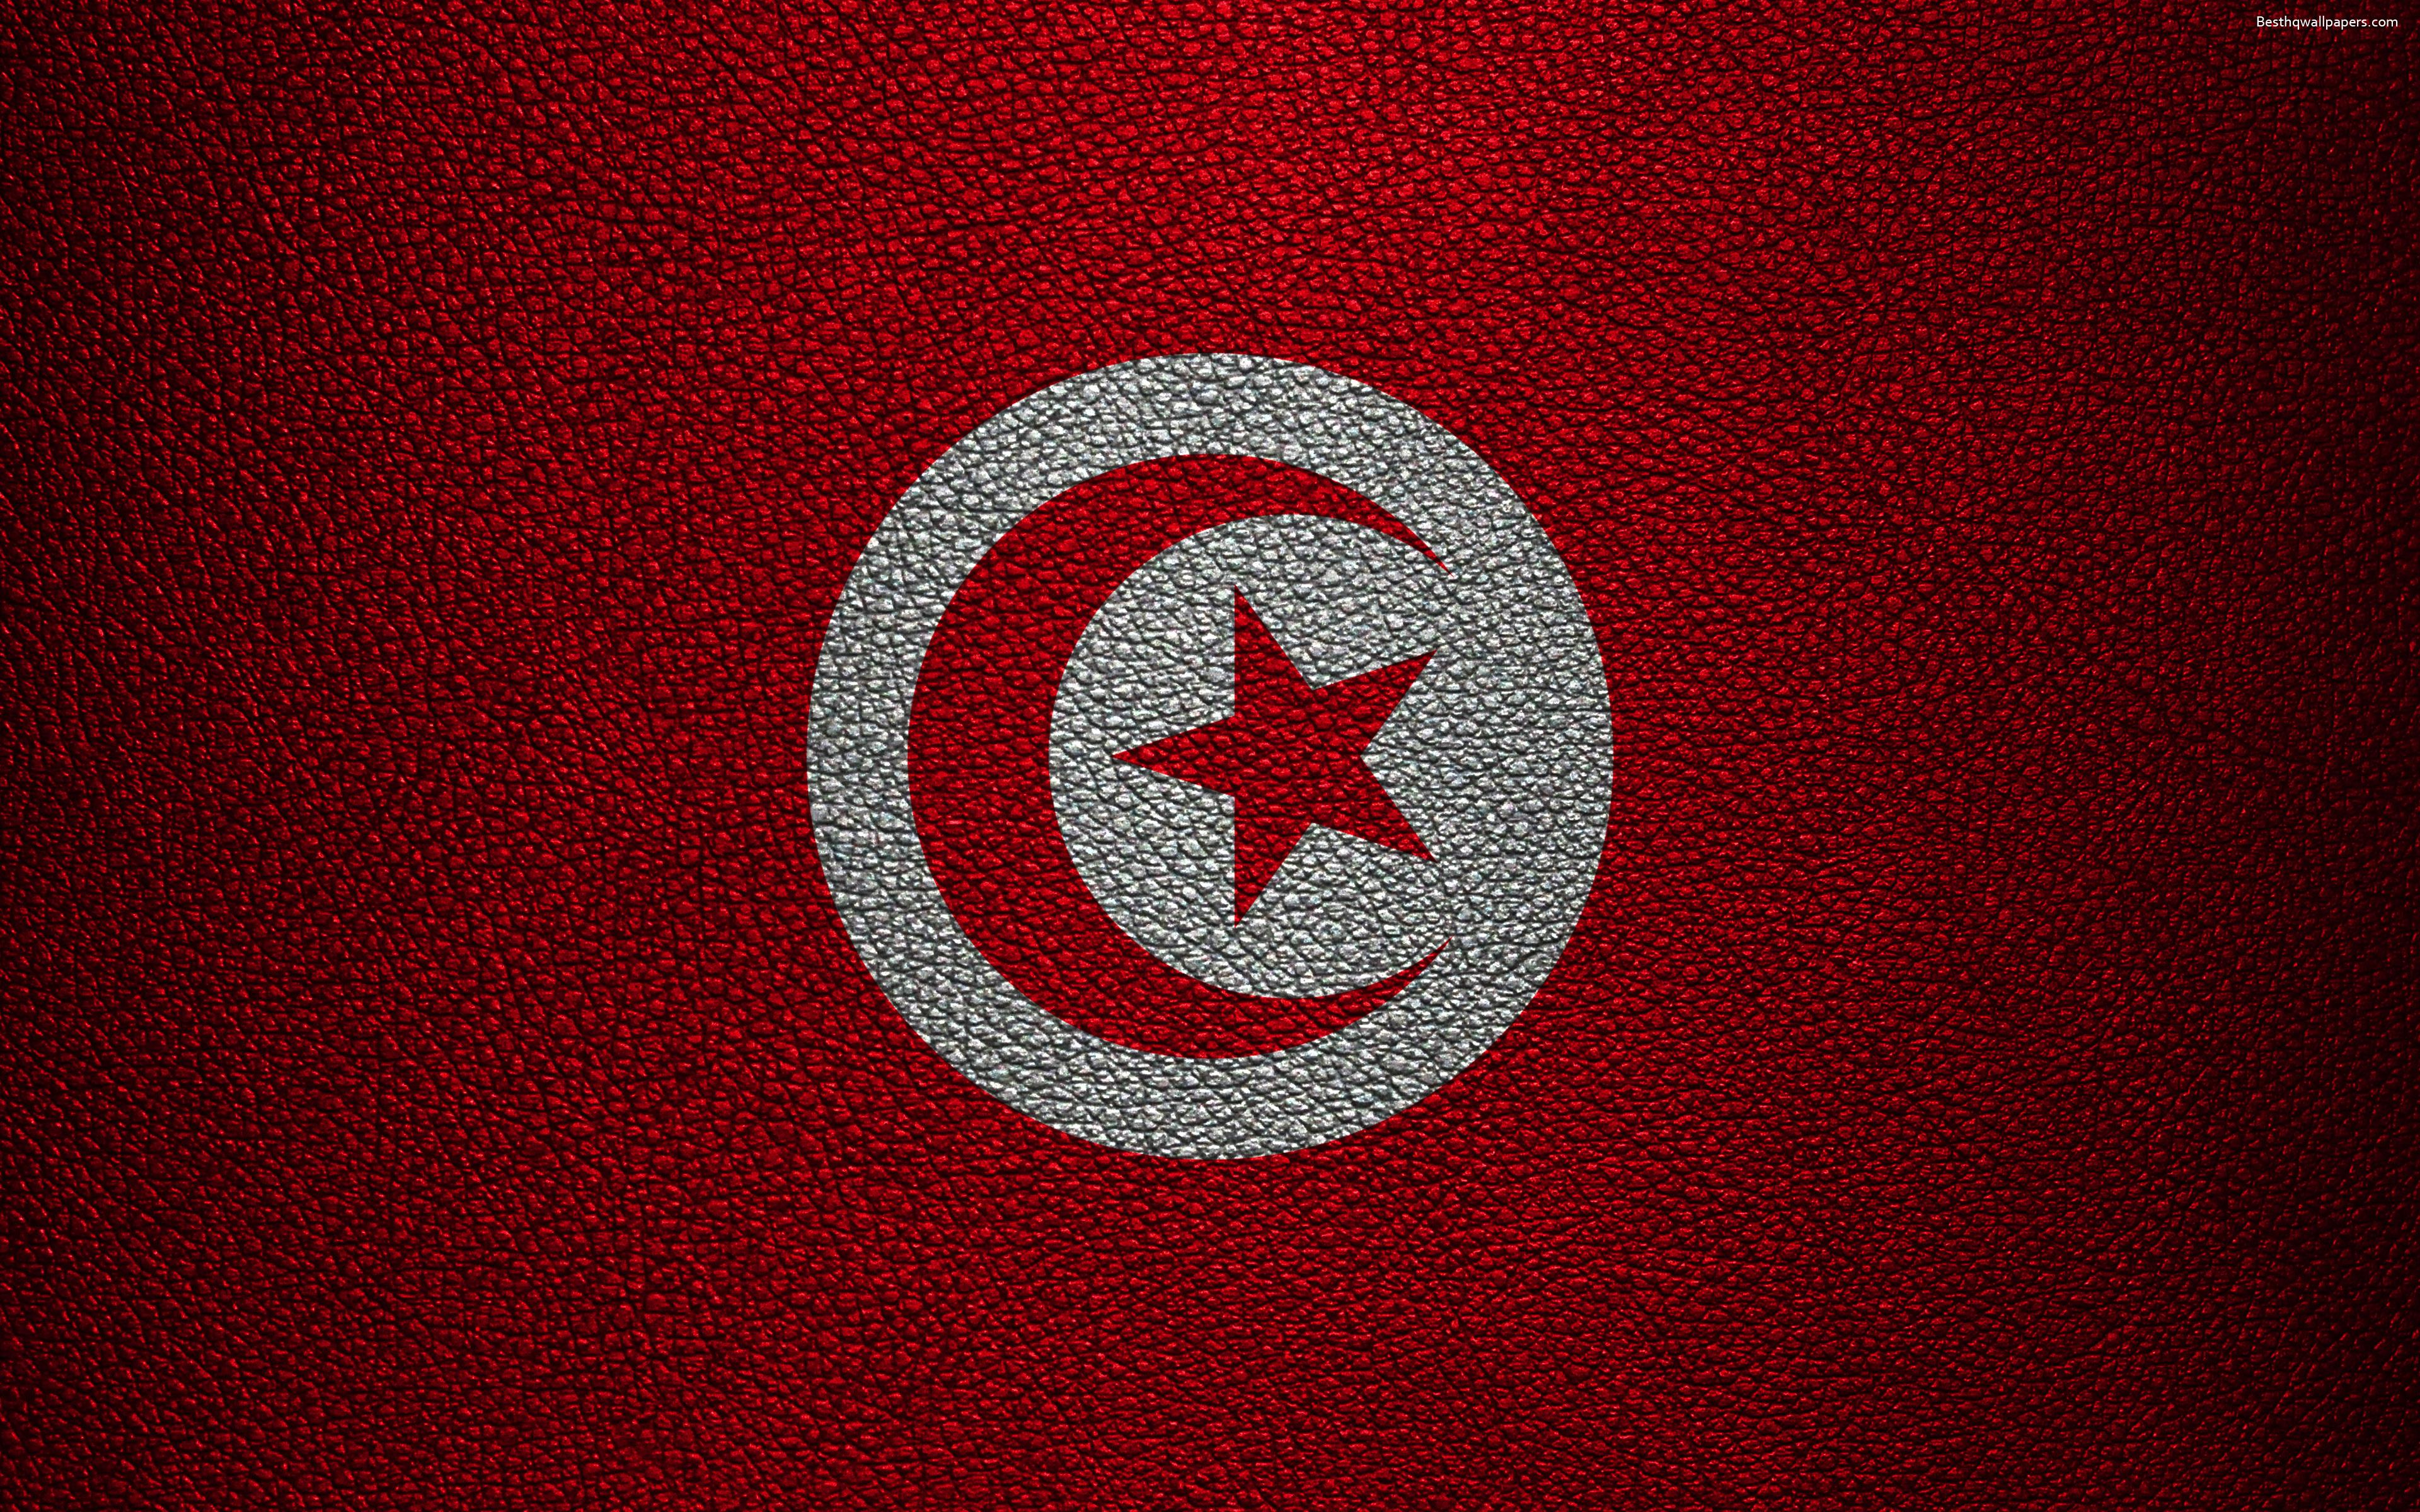 Download wallpapers Flag of Tunisia, Africa, 4k, leather texture